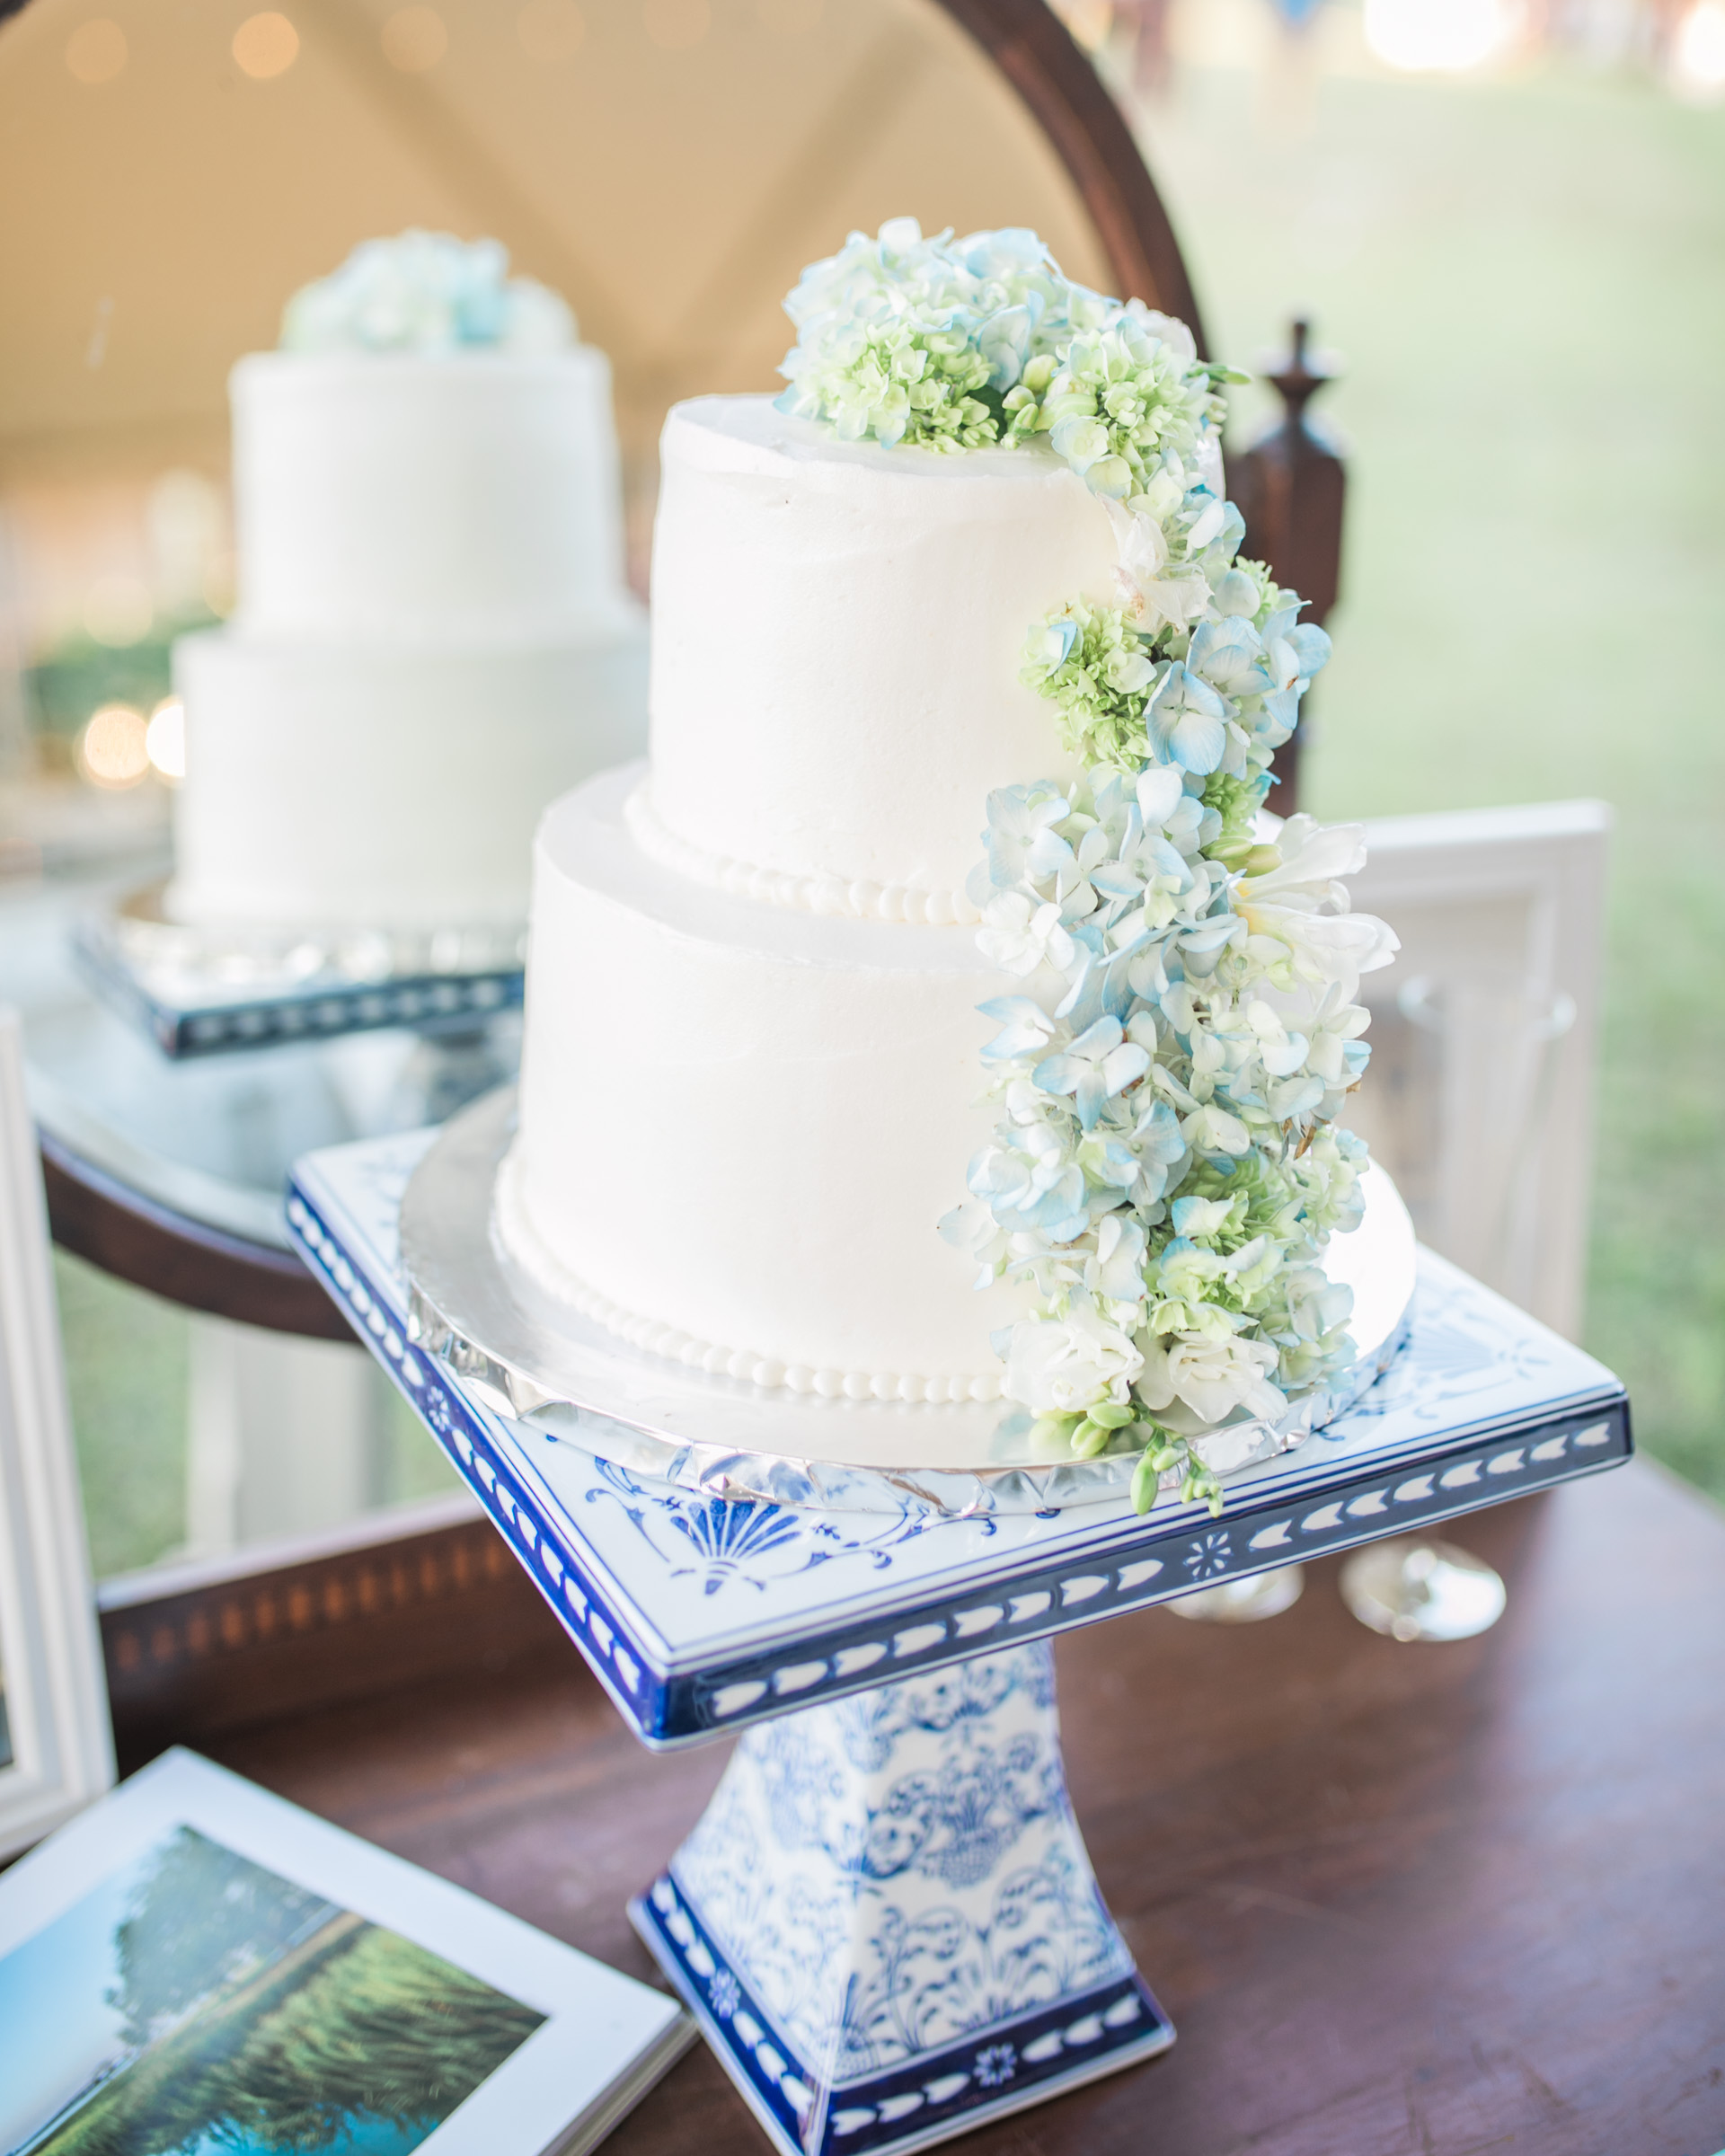 savannah wedding photographer katherine ives photography-6979.JPG